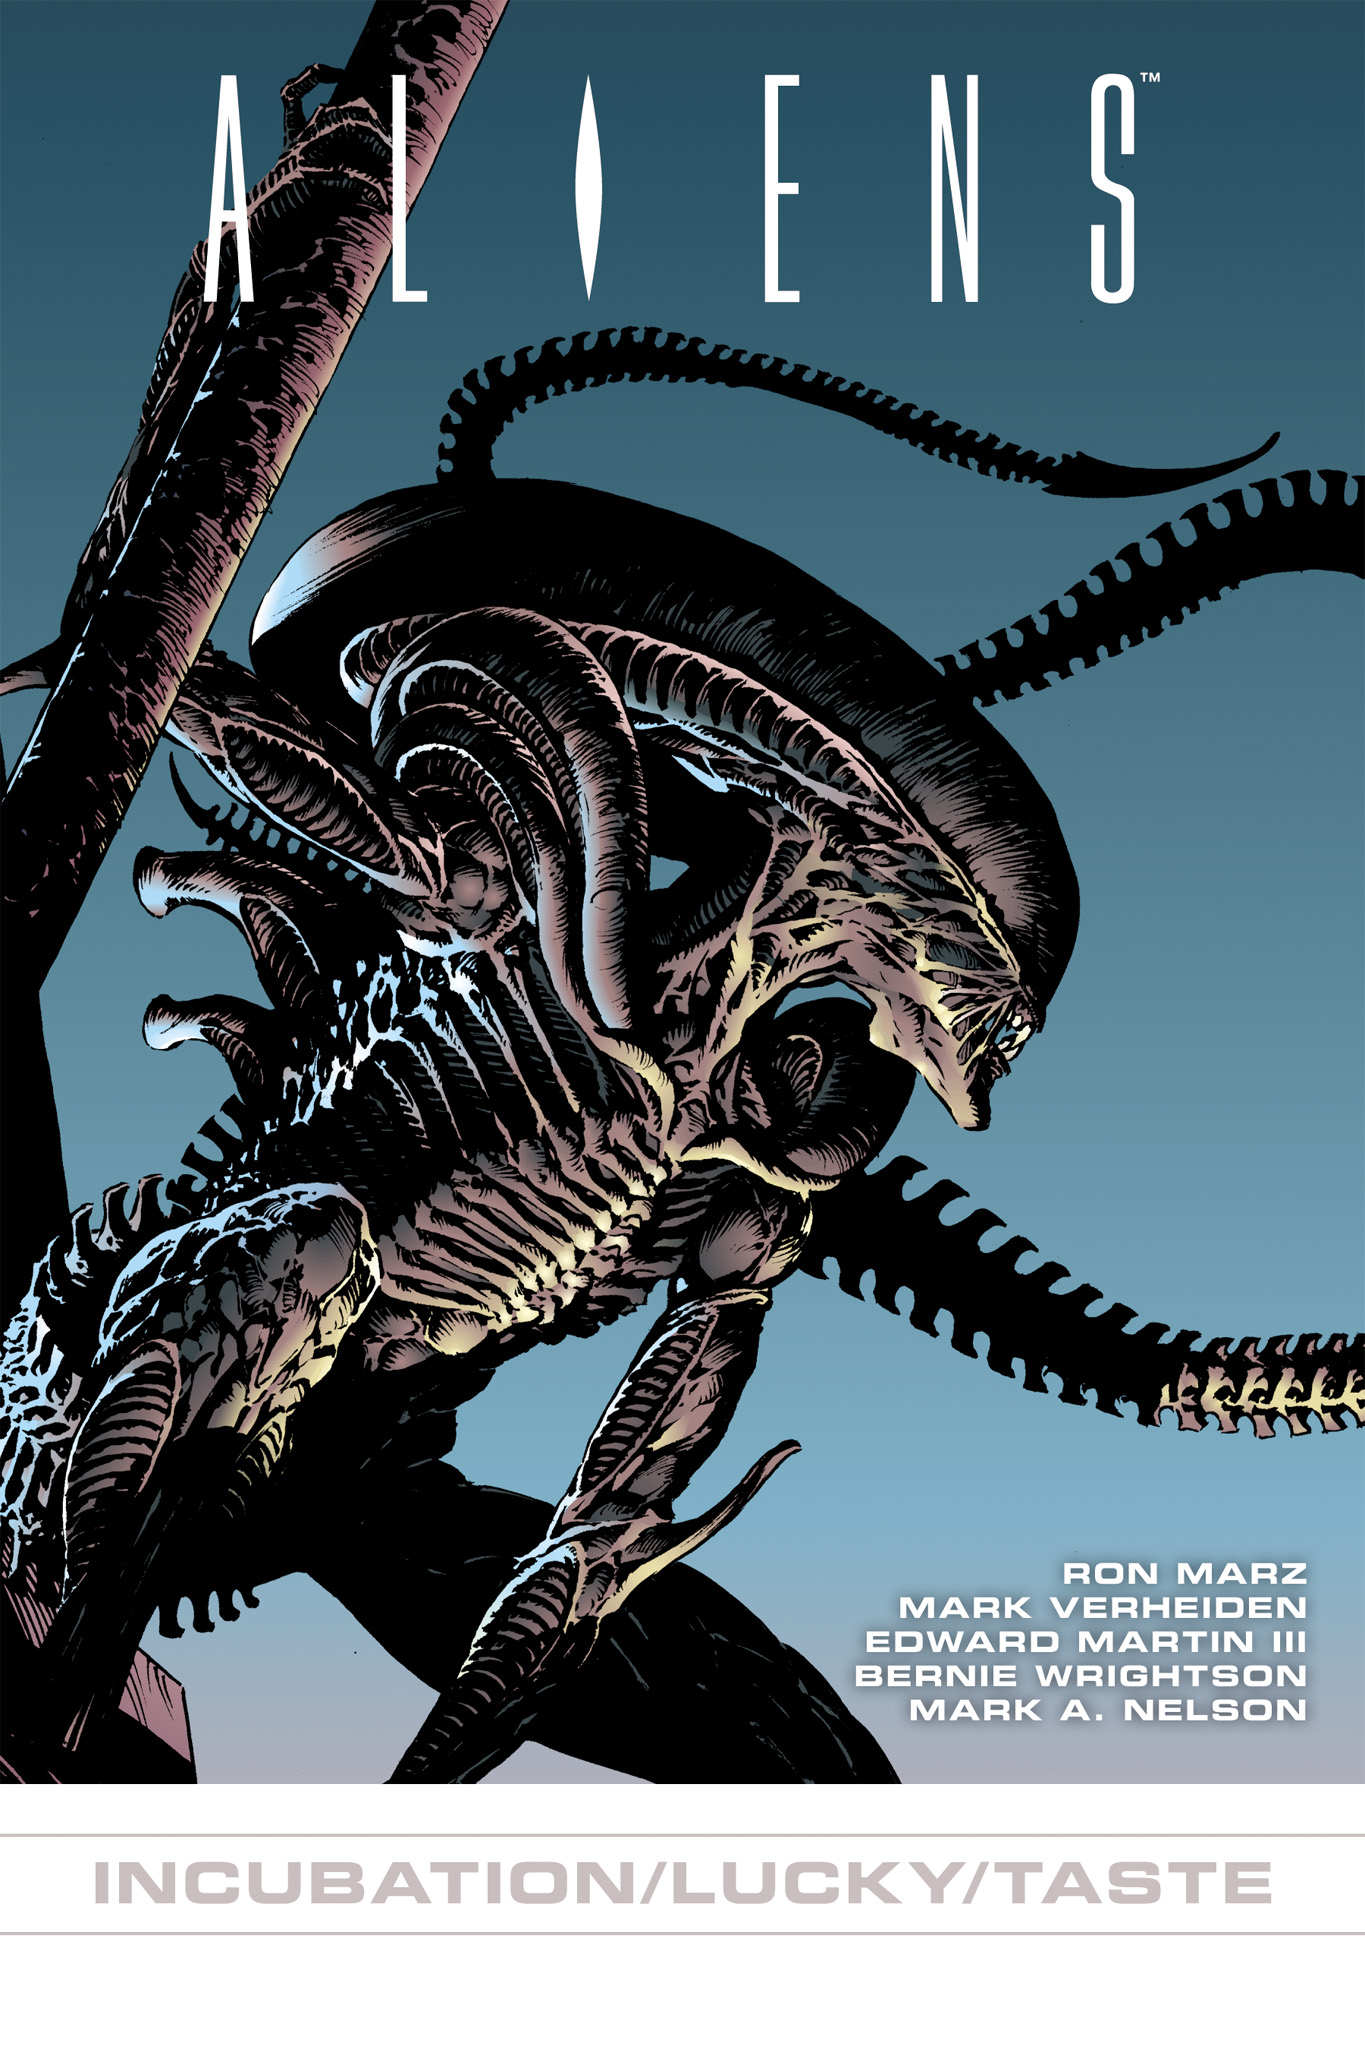 Read online Aliens: Incubation/Lucky/Taste comic -  Issue # Full - 1